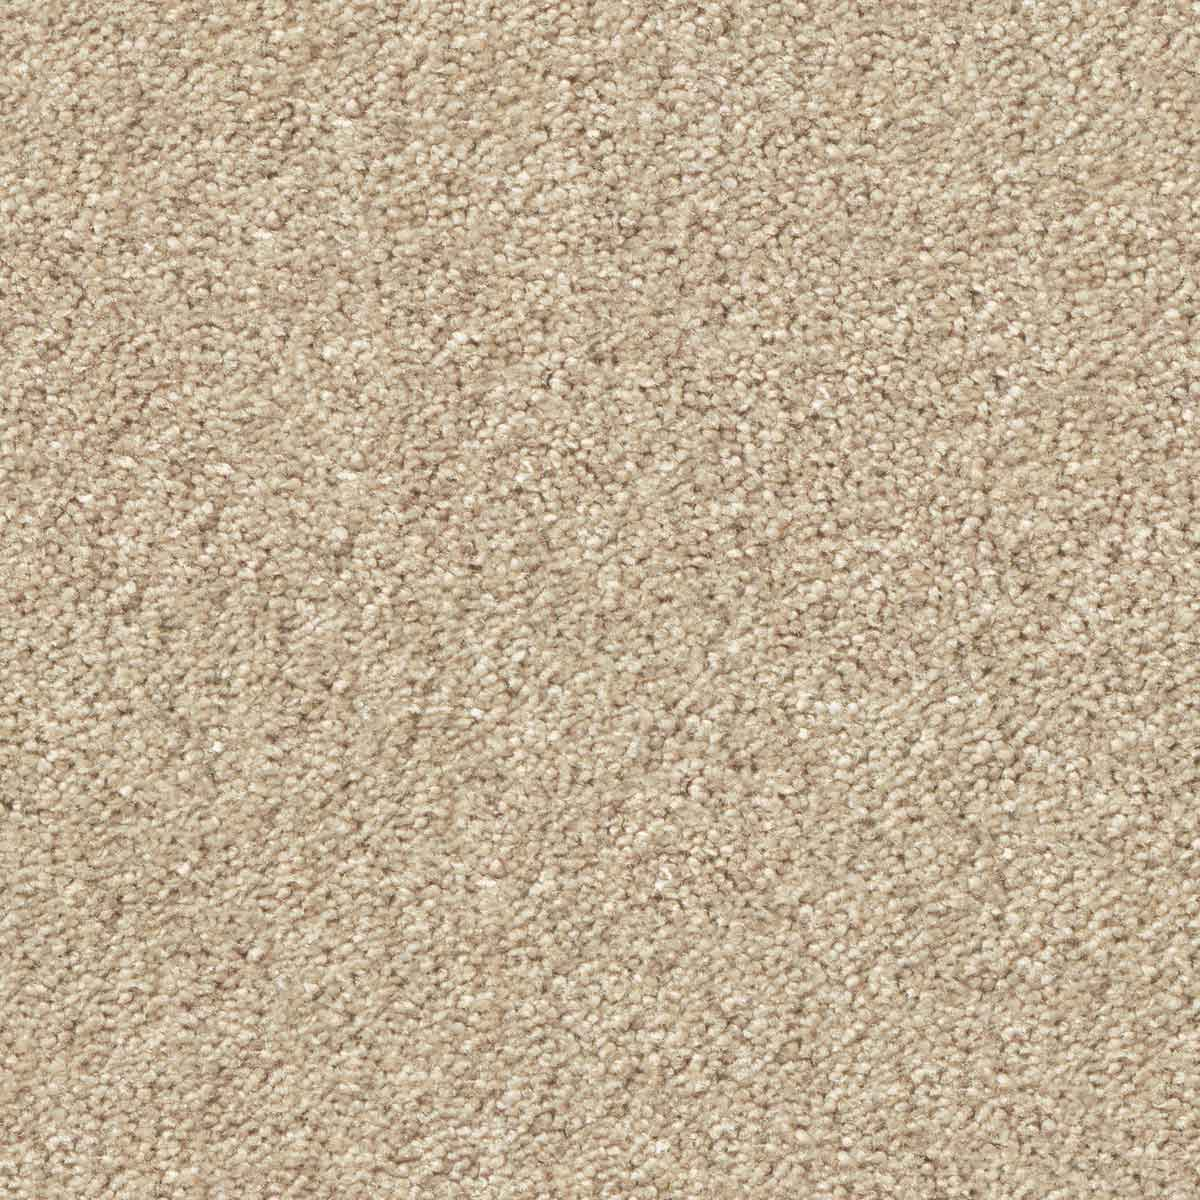 "Hervorragend Silky Seal"" Teppich, marzipan 1,50 x 2,00 m │ Object Carpet GB91"